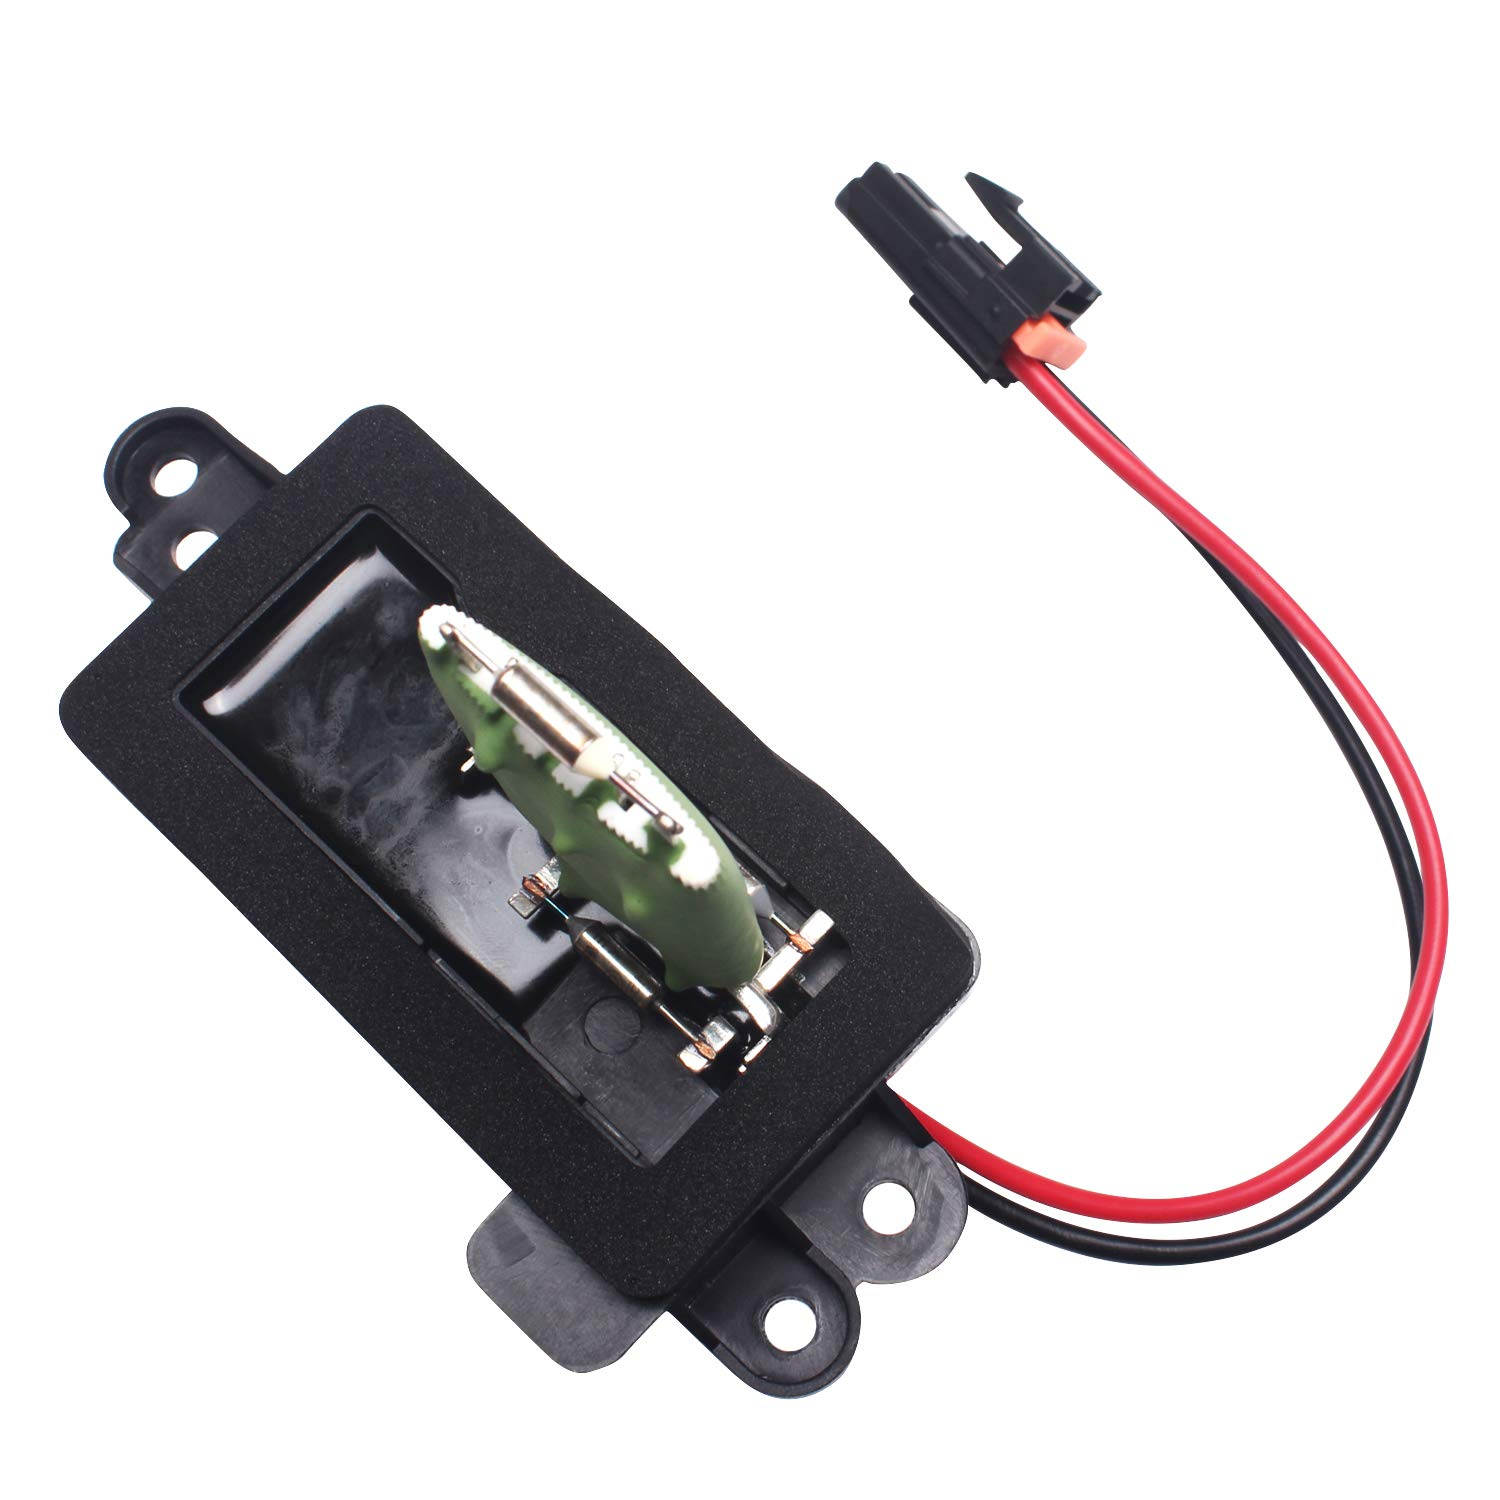 973-405 Beneges HVAC Blower Motor Resistor with Harness Compatible with 2003-2006 Cadillac Escalade Chevy Avalanche Silverado Suburban Tahoe GMC Sierra Yukon 89019088